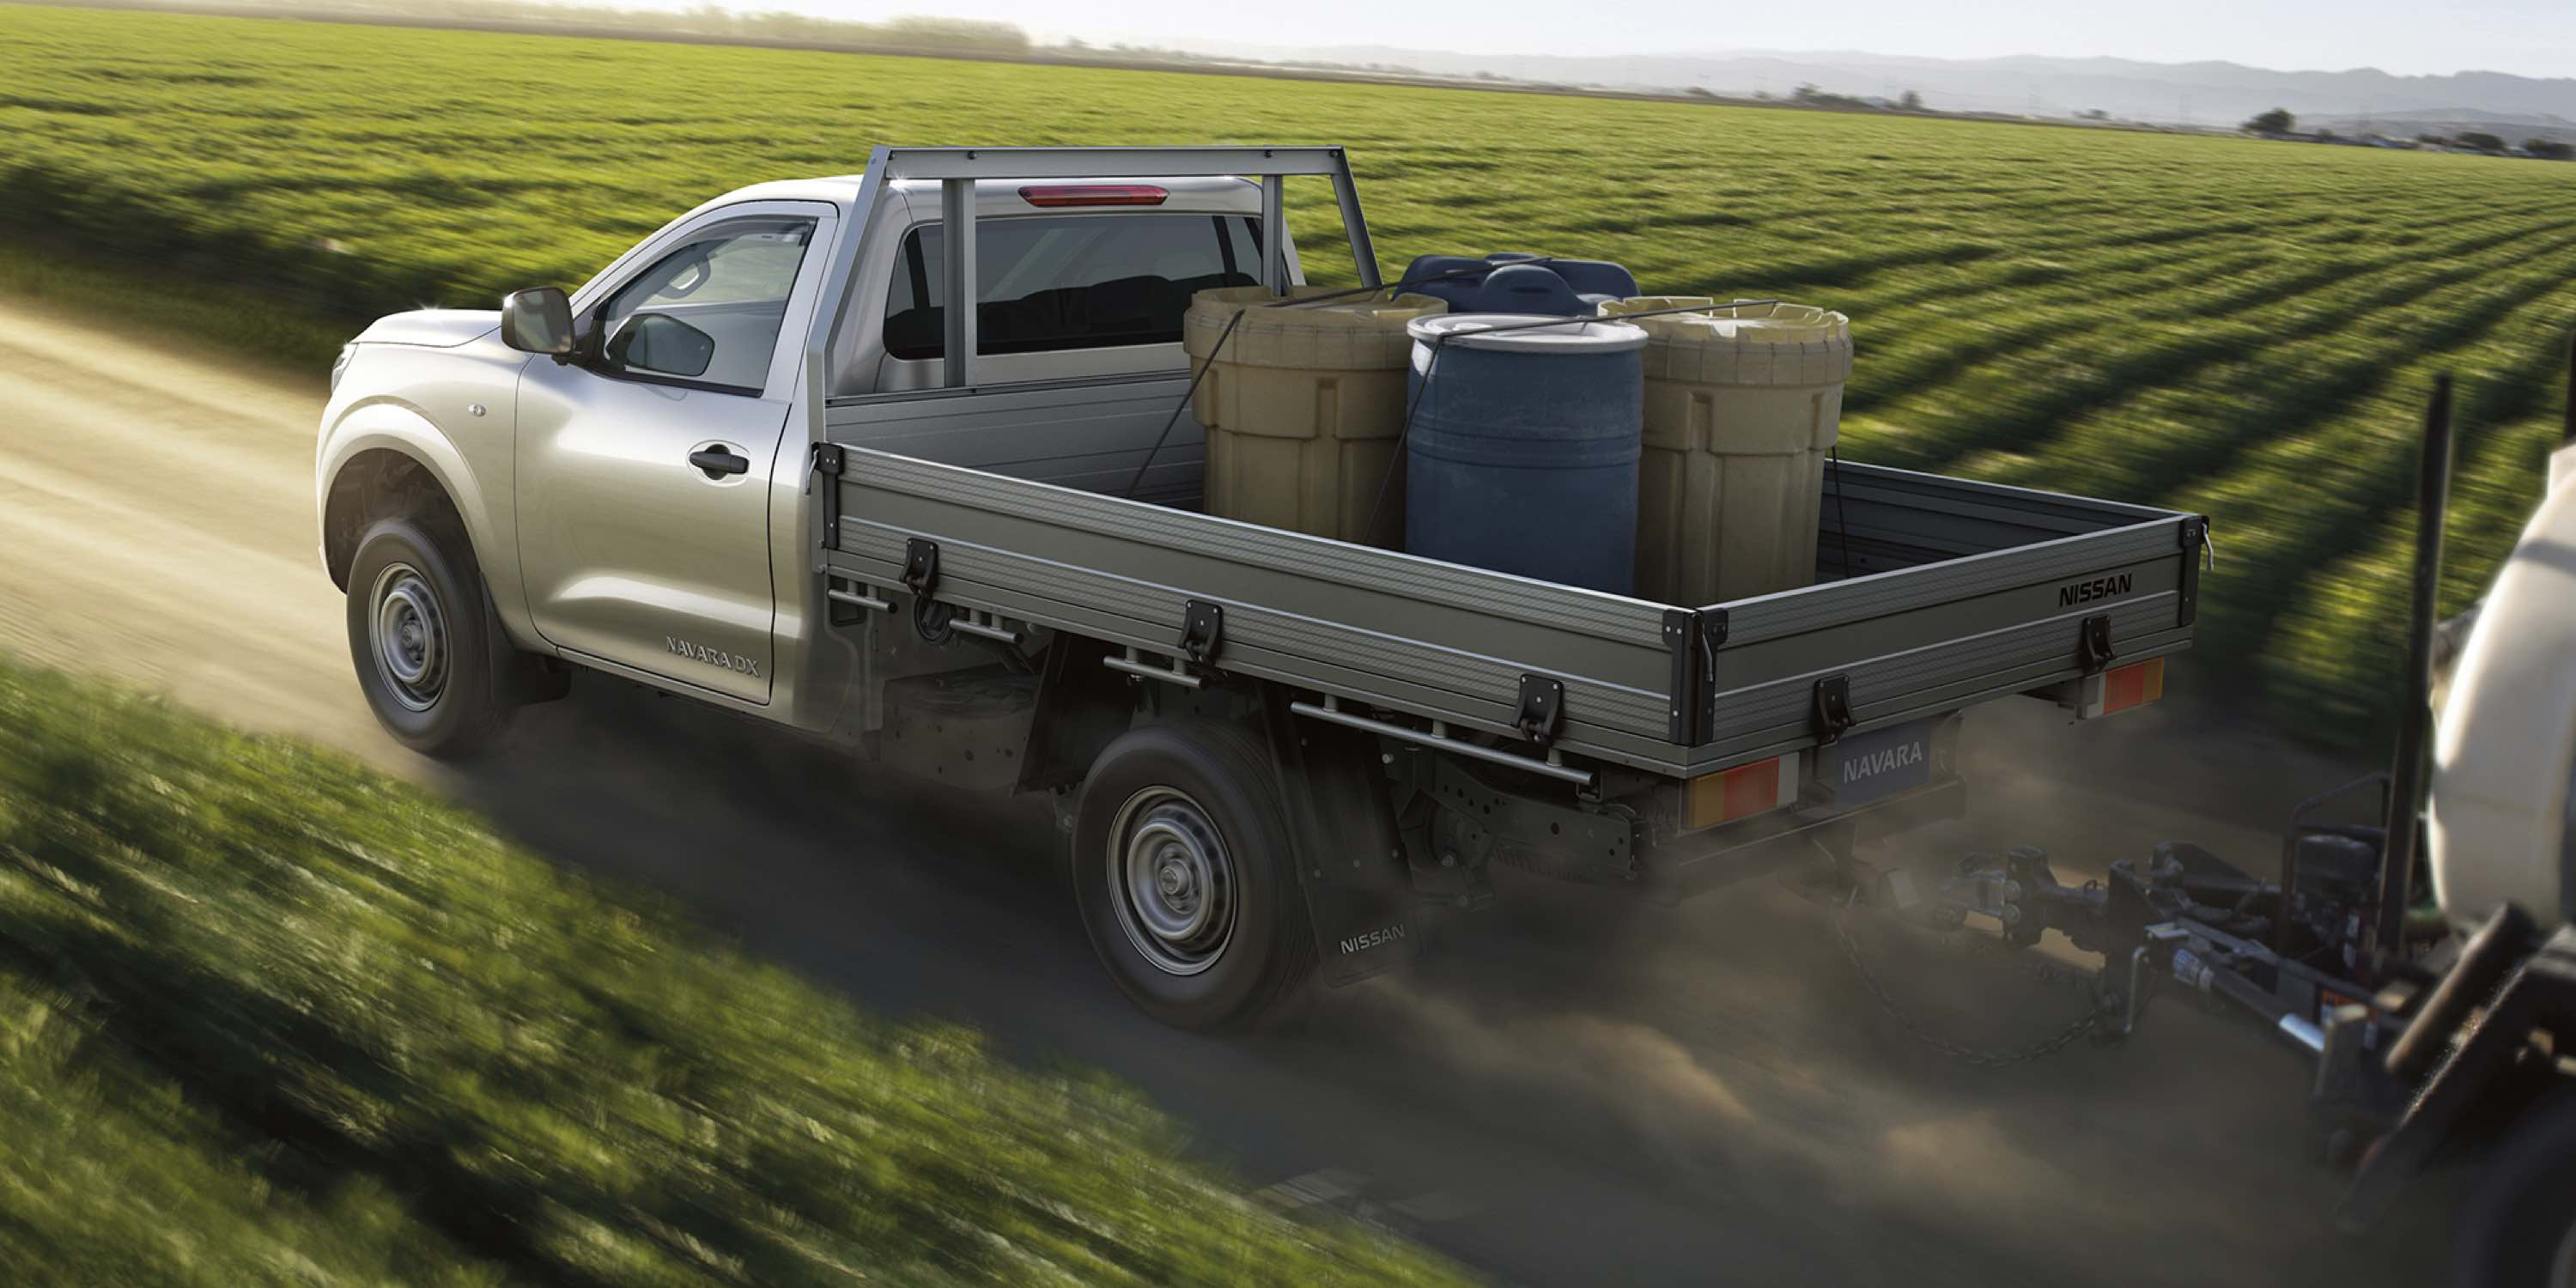 Nissan Navara towing farming equipment